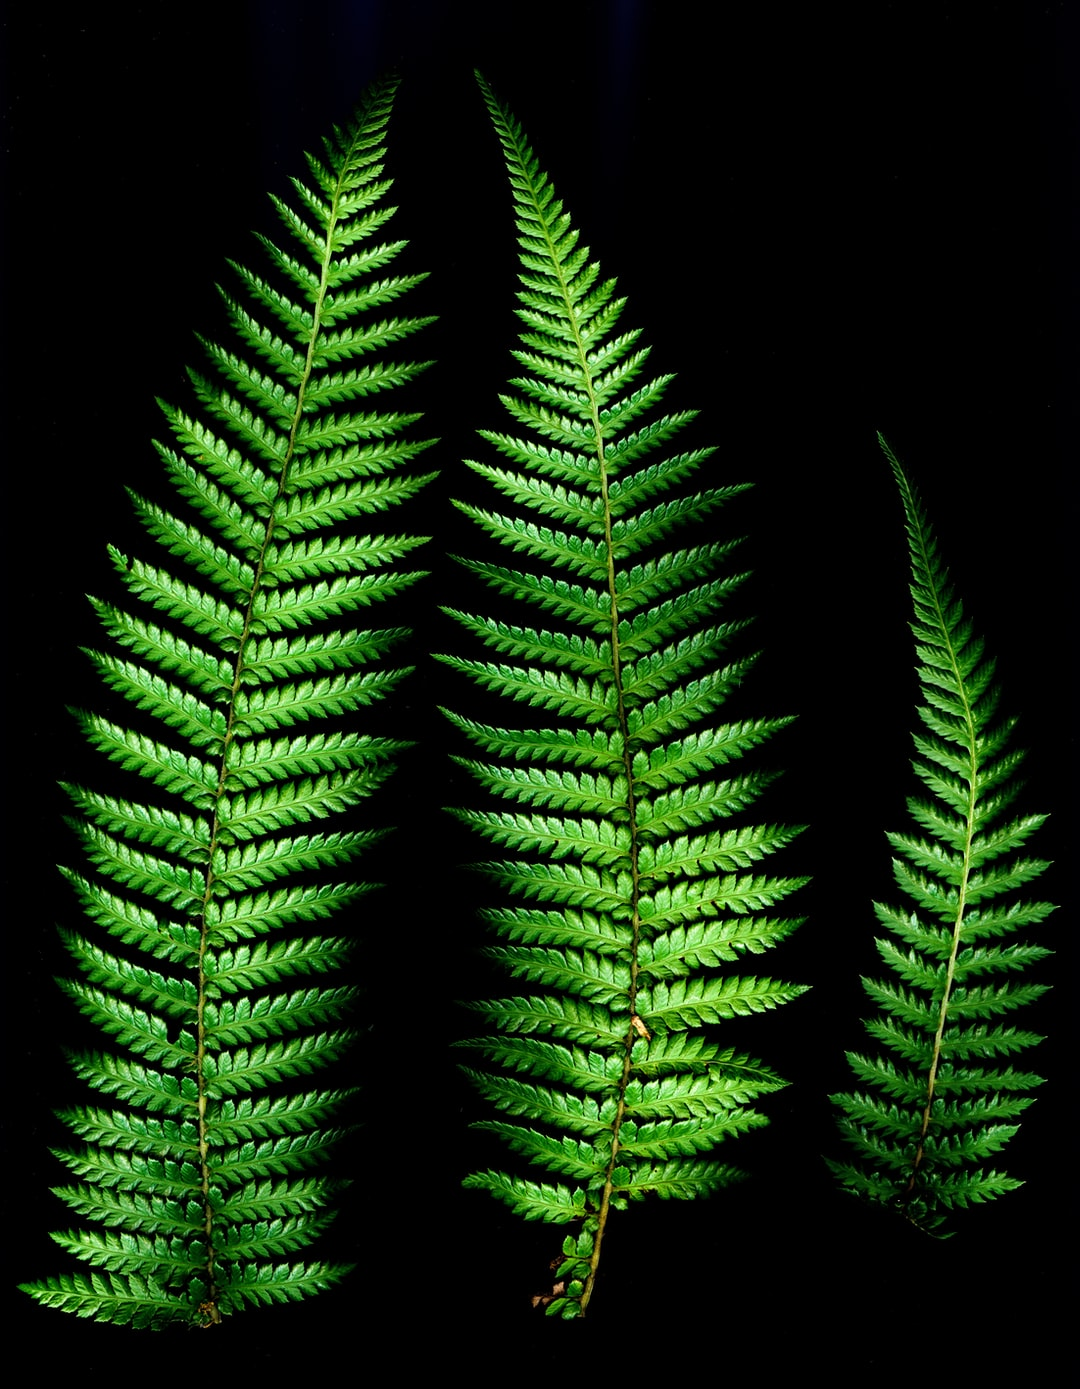 One of the few plants remaining in my neglected garden is this Tasmanian Tree Fern.  This is not a photograph, it's a scanograph.  The size of the scanograph had to be reduced from it's original 93.8 MP.  Incredible resolution